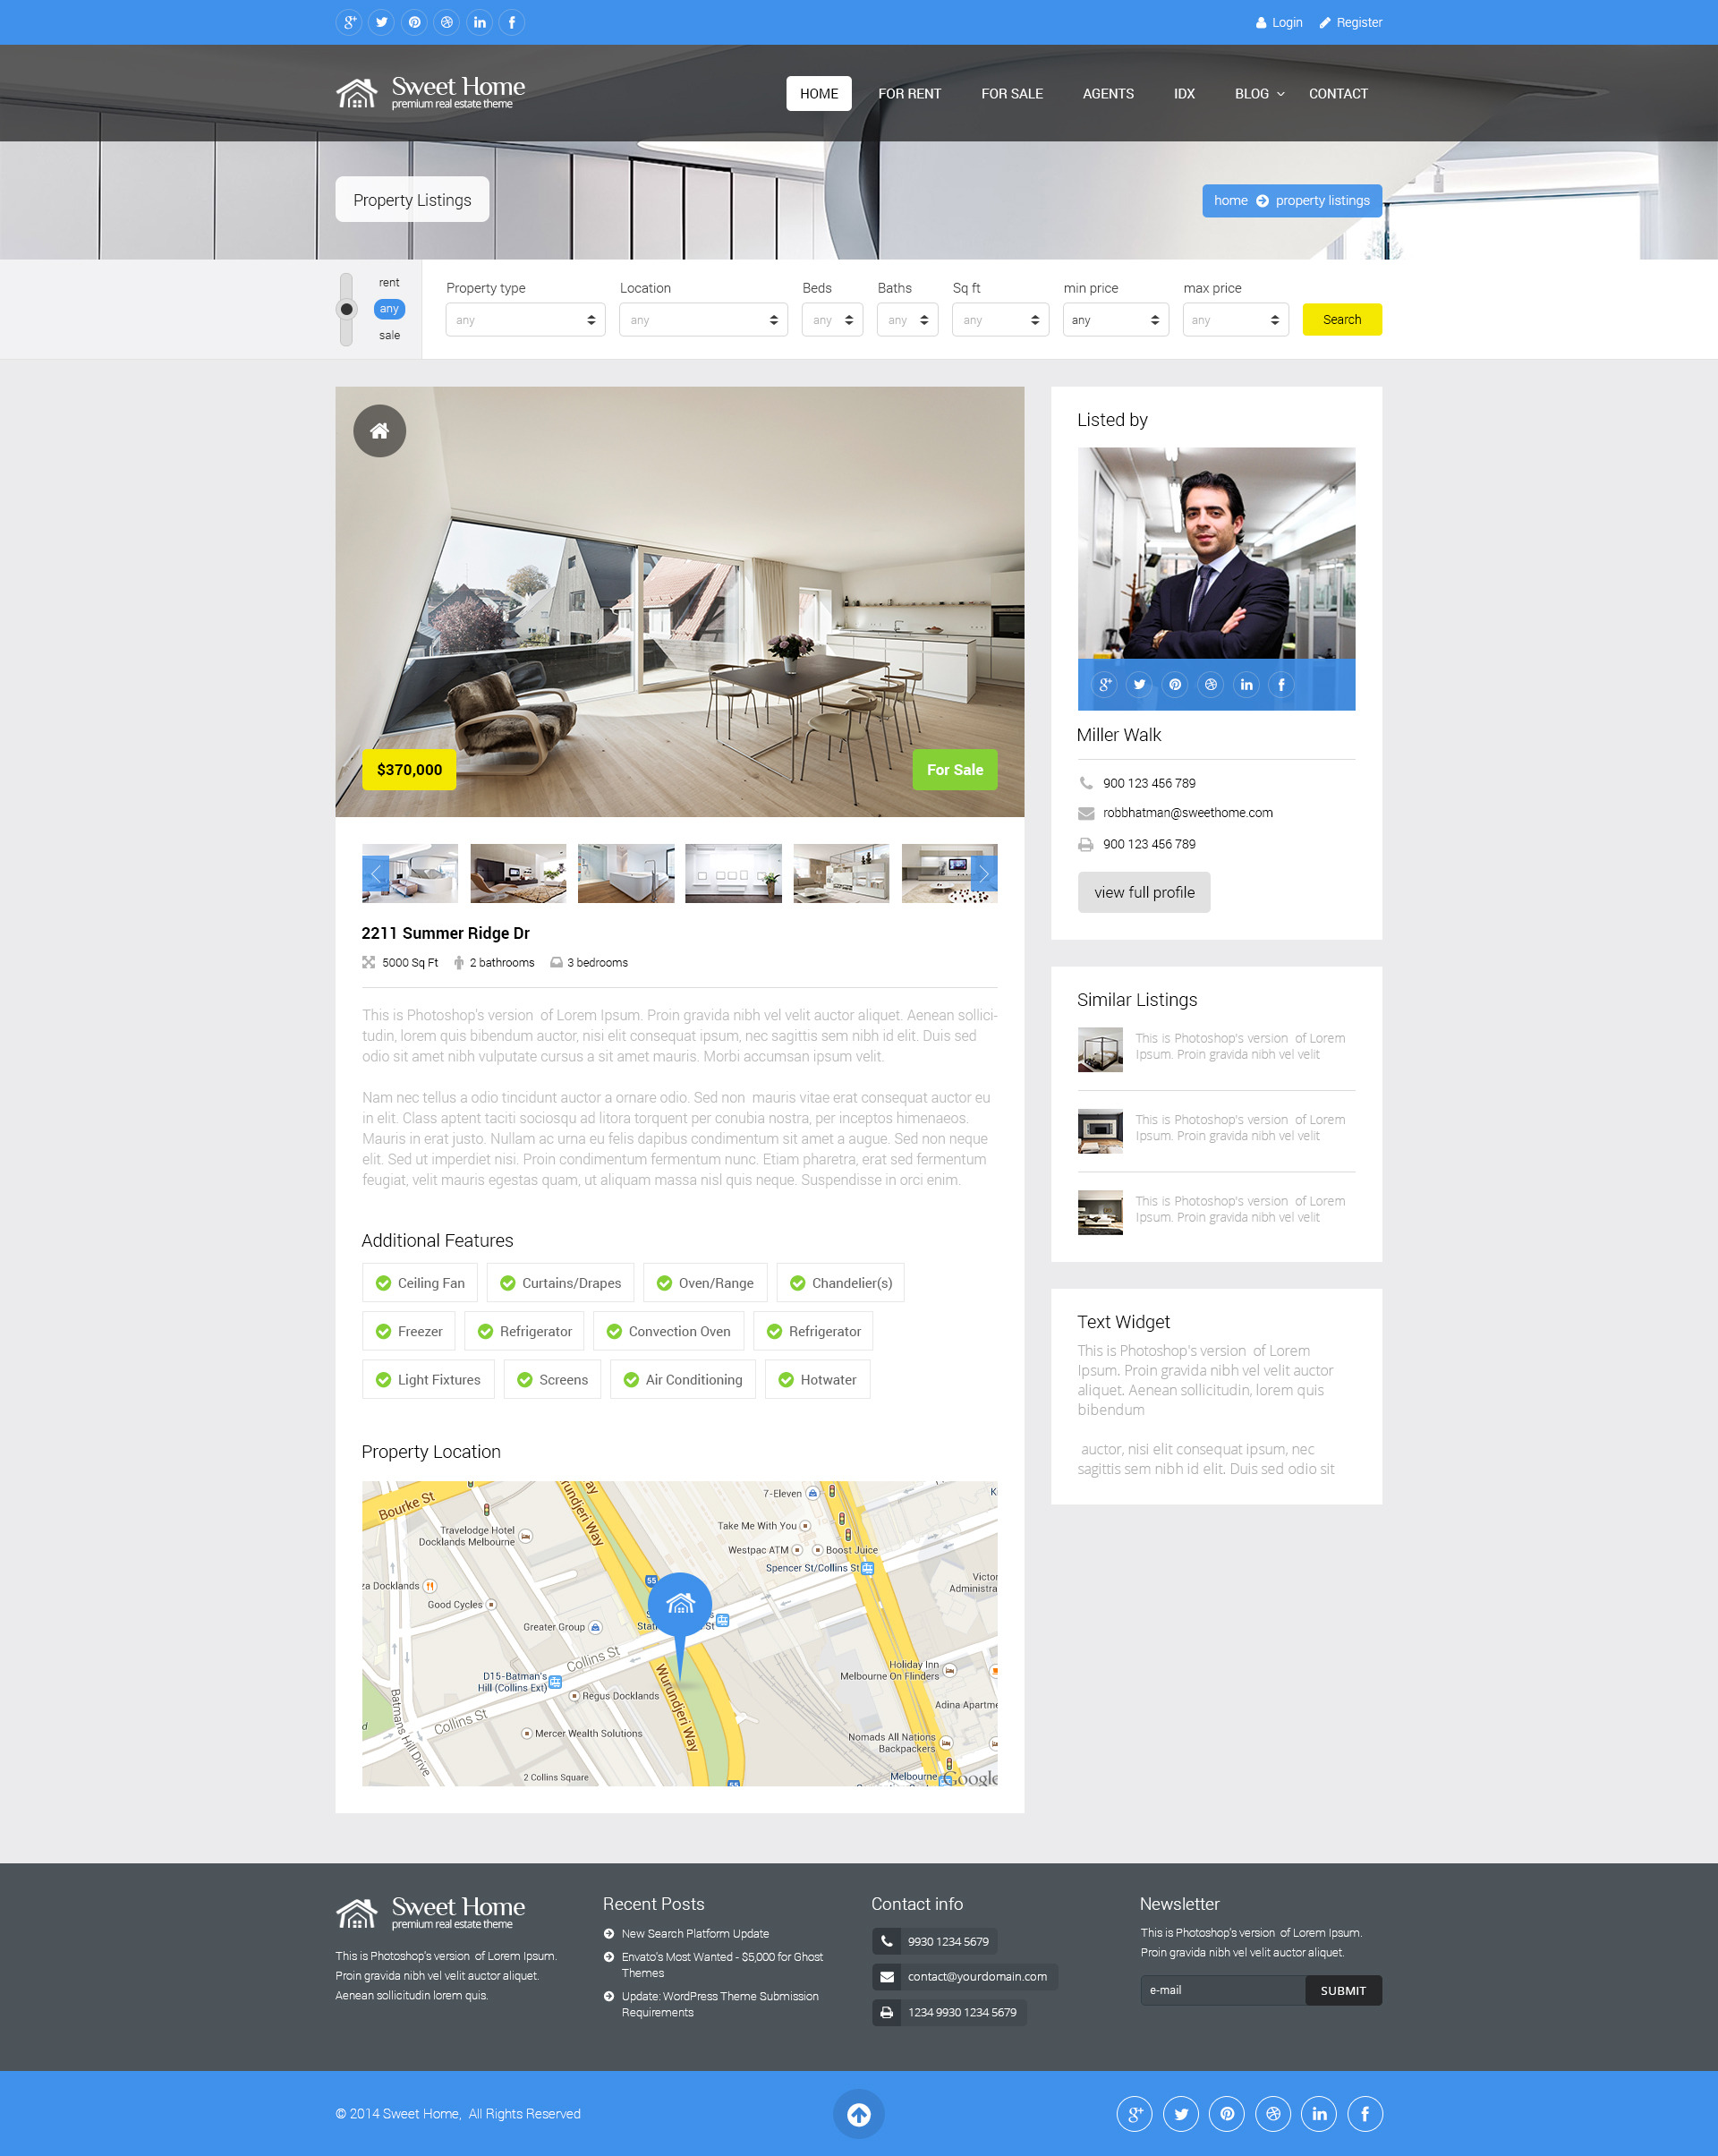 sweethome real estate html template by premiumlayers themeforest screenshots 00 preview jpg screenshots 01 home jpg screenshots 02 property listing jpg